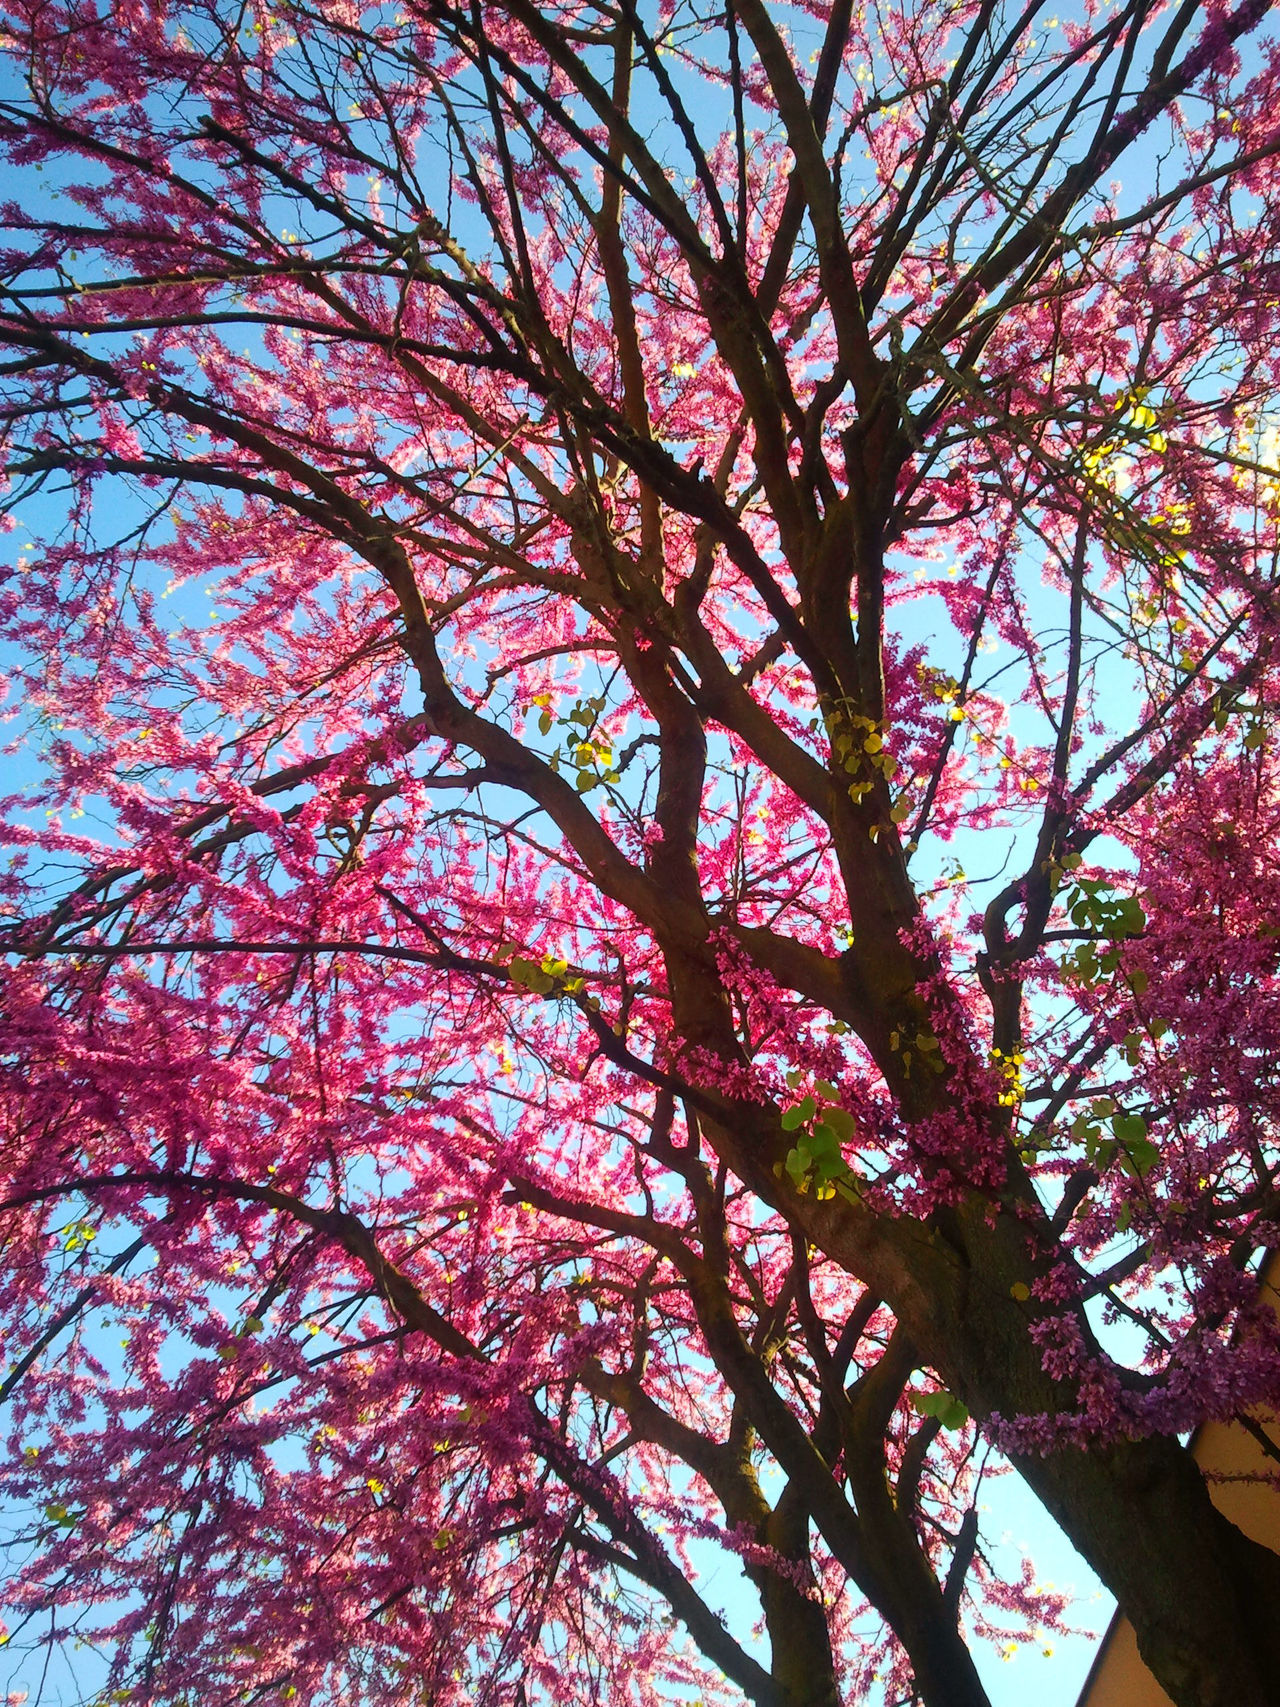 spring into spring And All The Wildflowers Are In Bloom Beauty In Nature Blue Sky Day Growth Low Angle View Nature No People Outdoors Pink Colour Pink Flowers Showcase April Sky Spring Into Spring Spring Into Spring Blossoming In The Fresh Morning Sun New Blossoms Nature Collection Tree